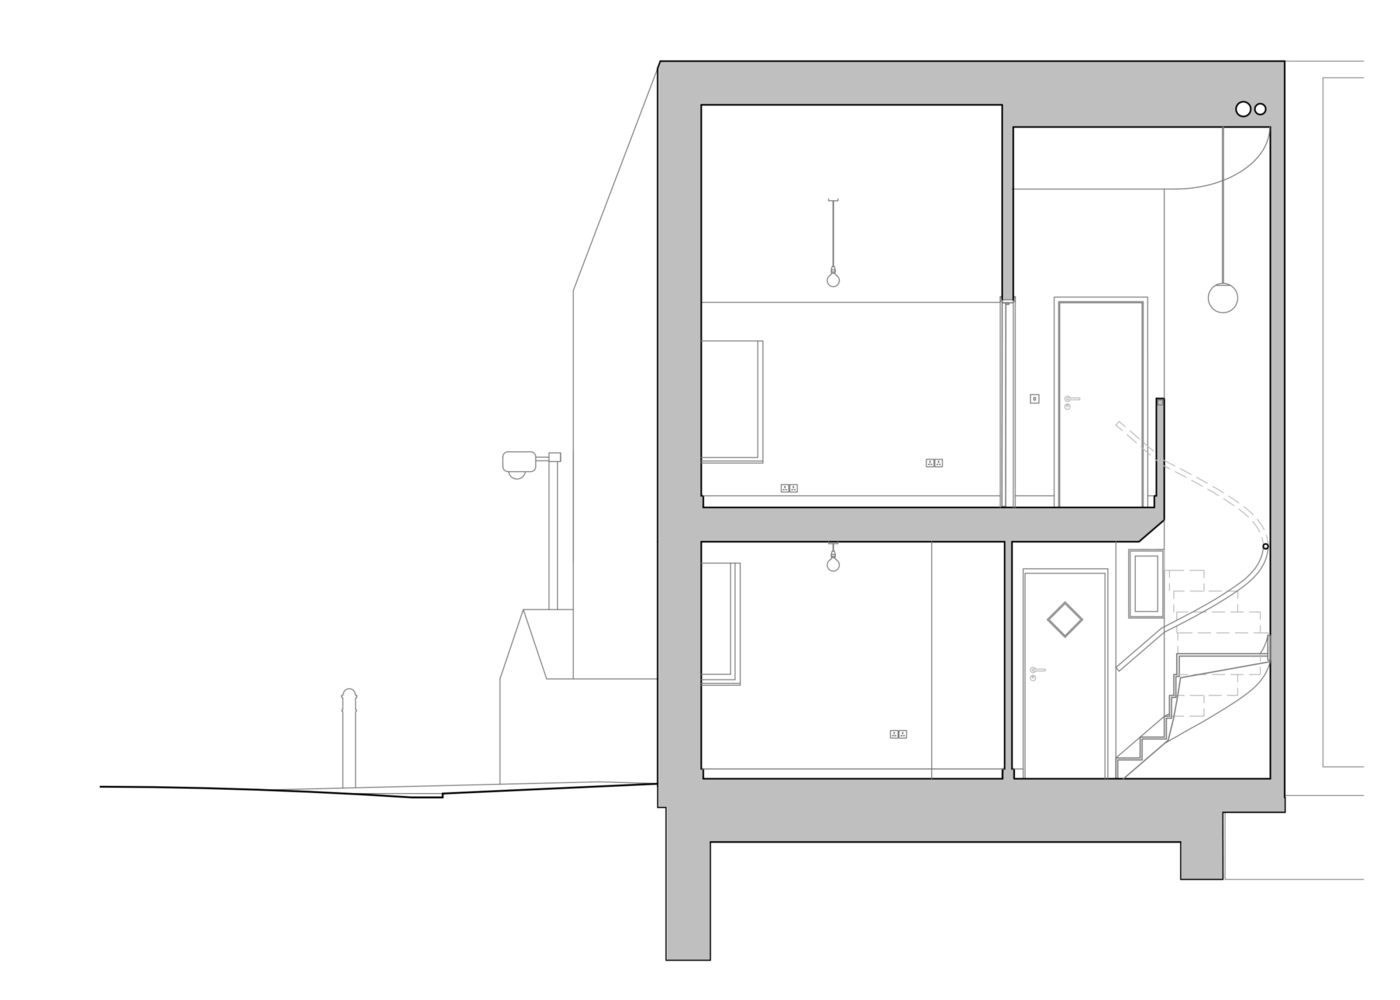 hight resolution of salmen house bedroom and stair section scale 1 to 50 at a3